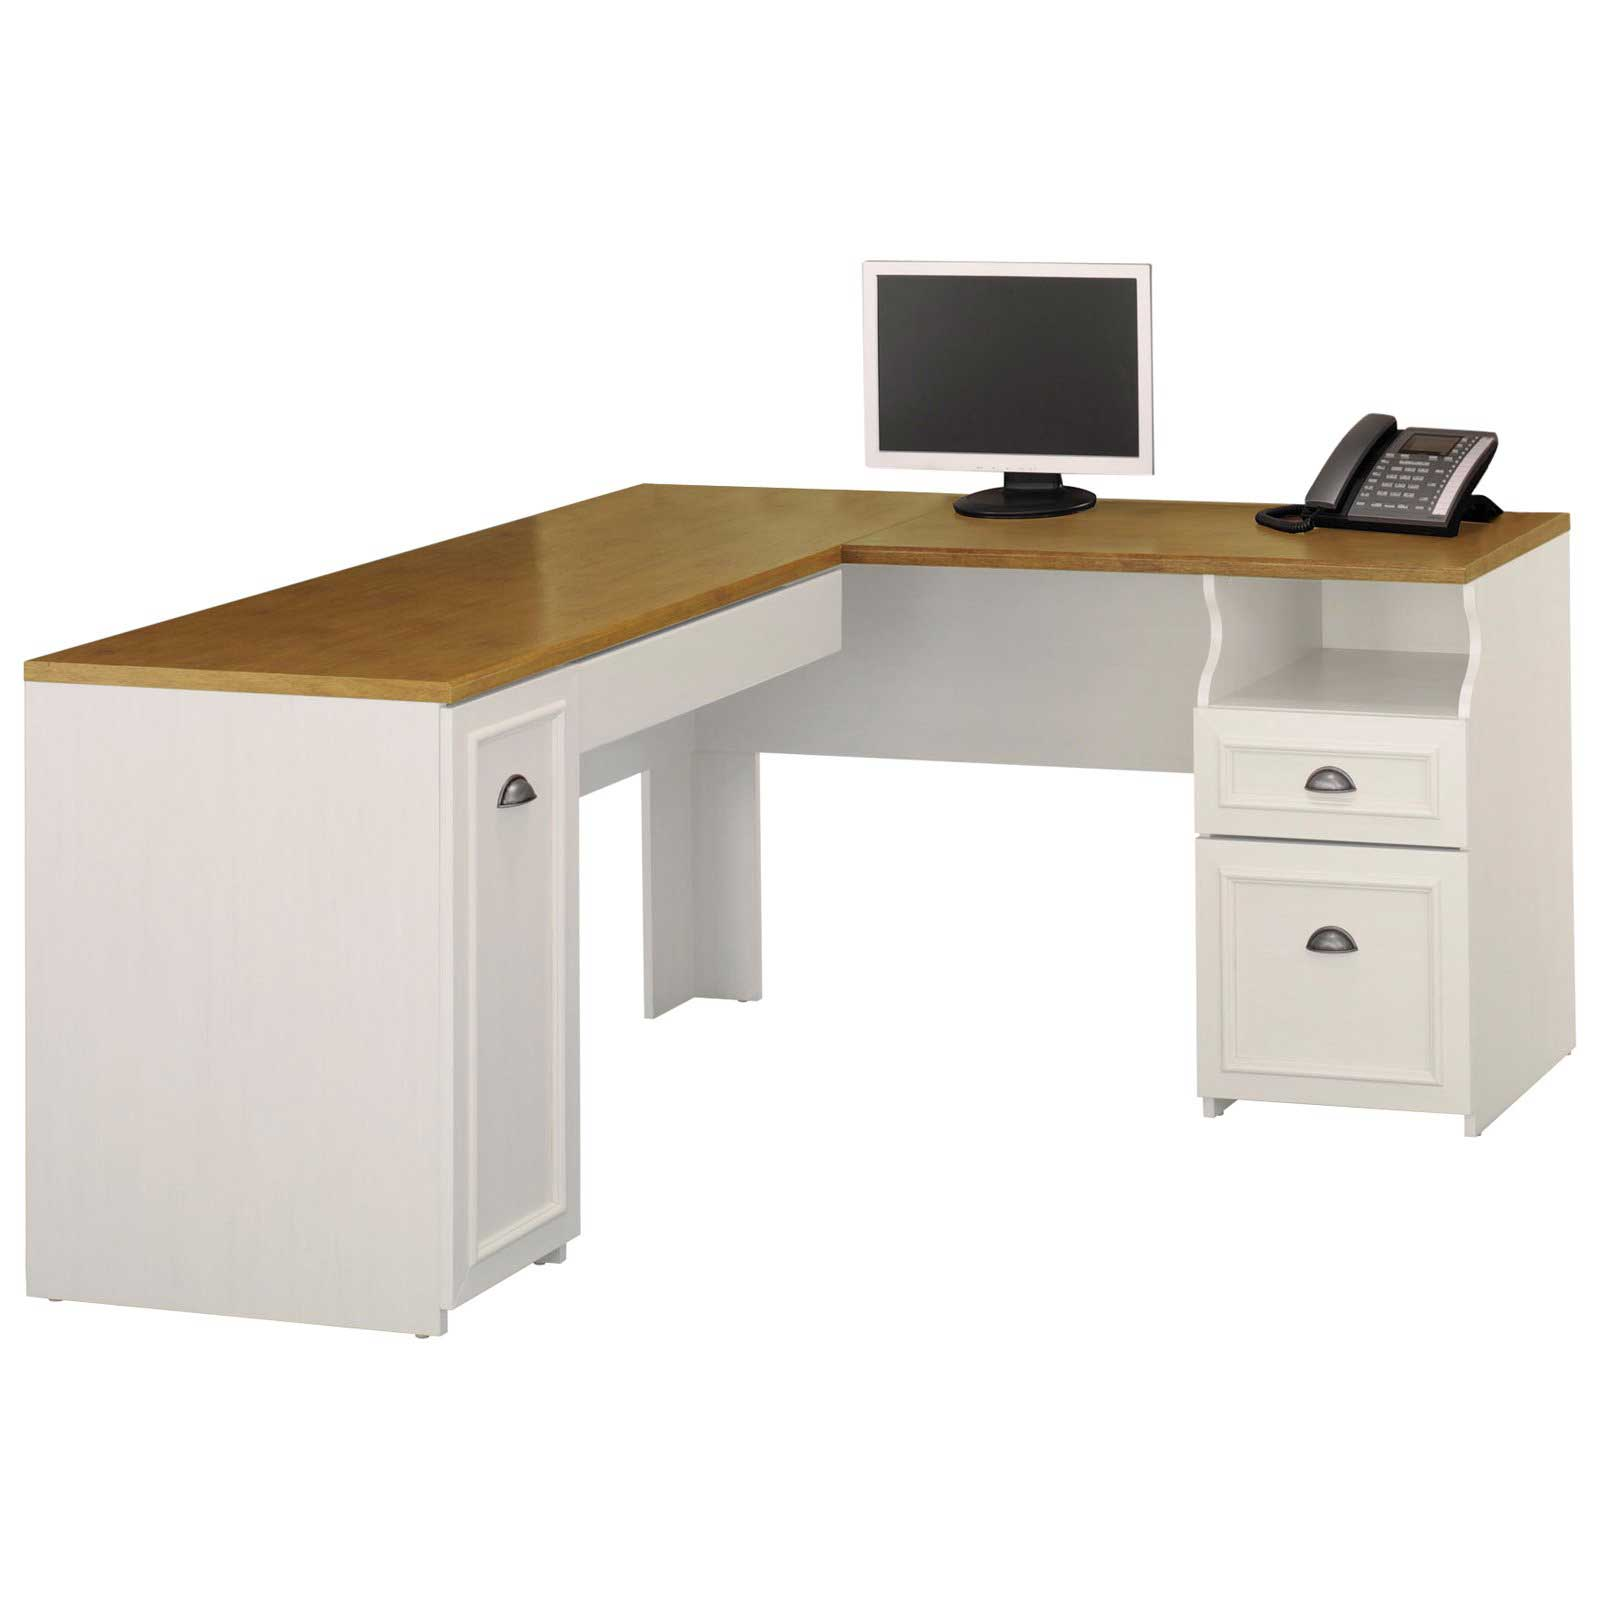 Black corner computer desk office furniture - Corner office desk ...